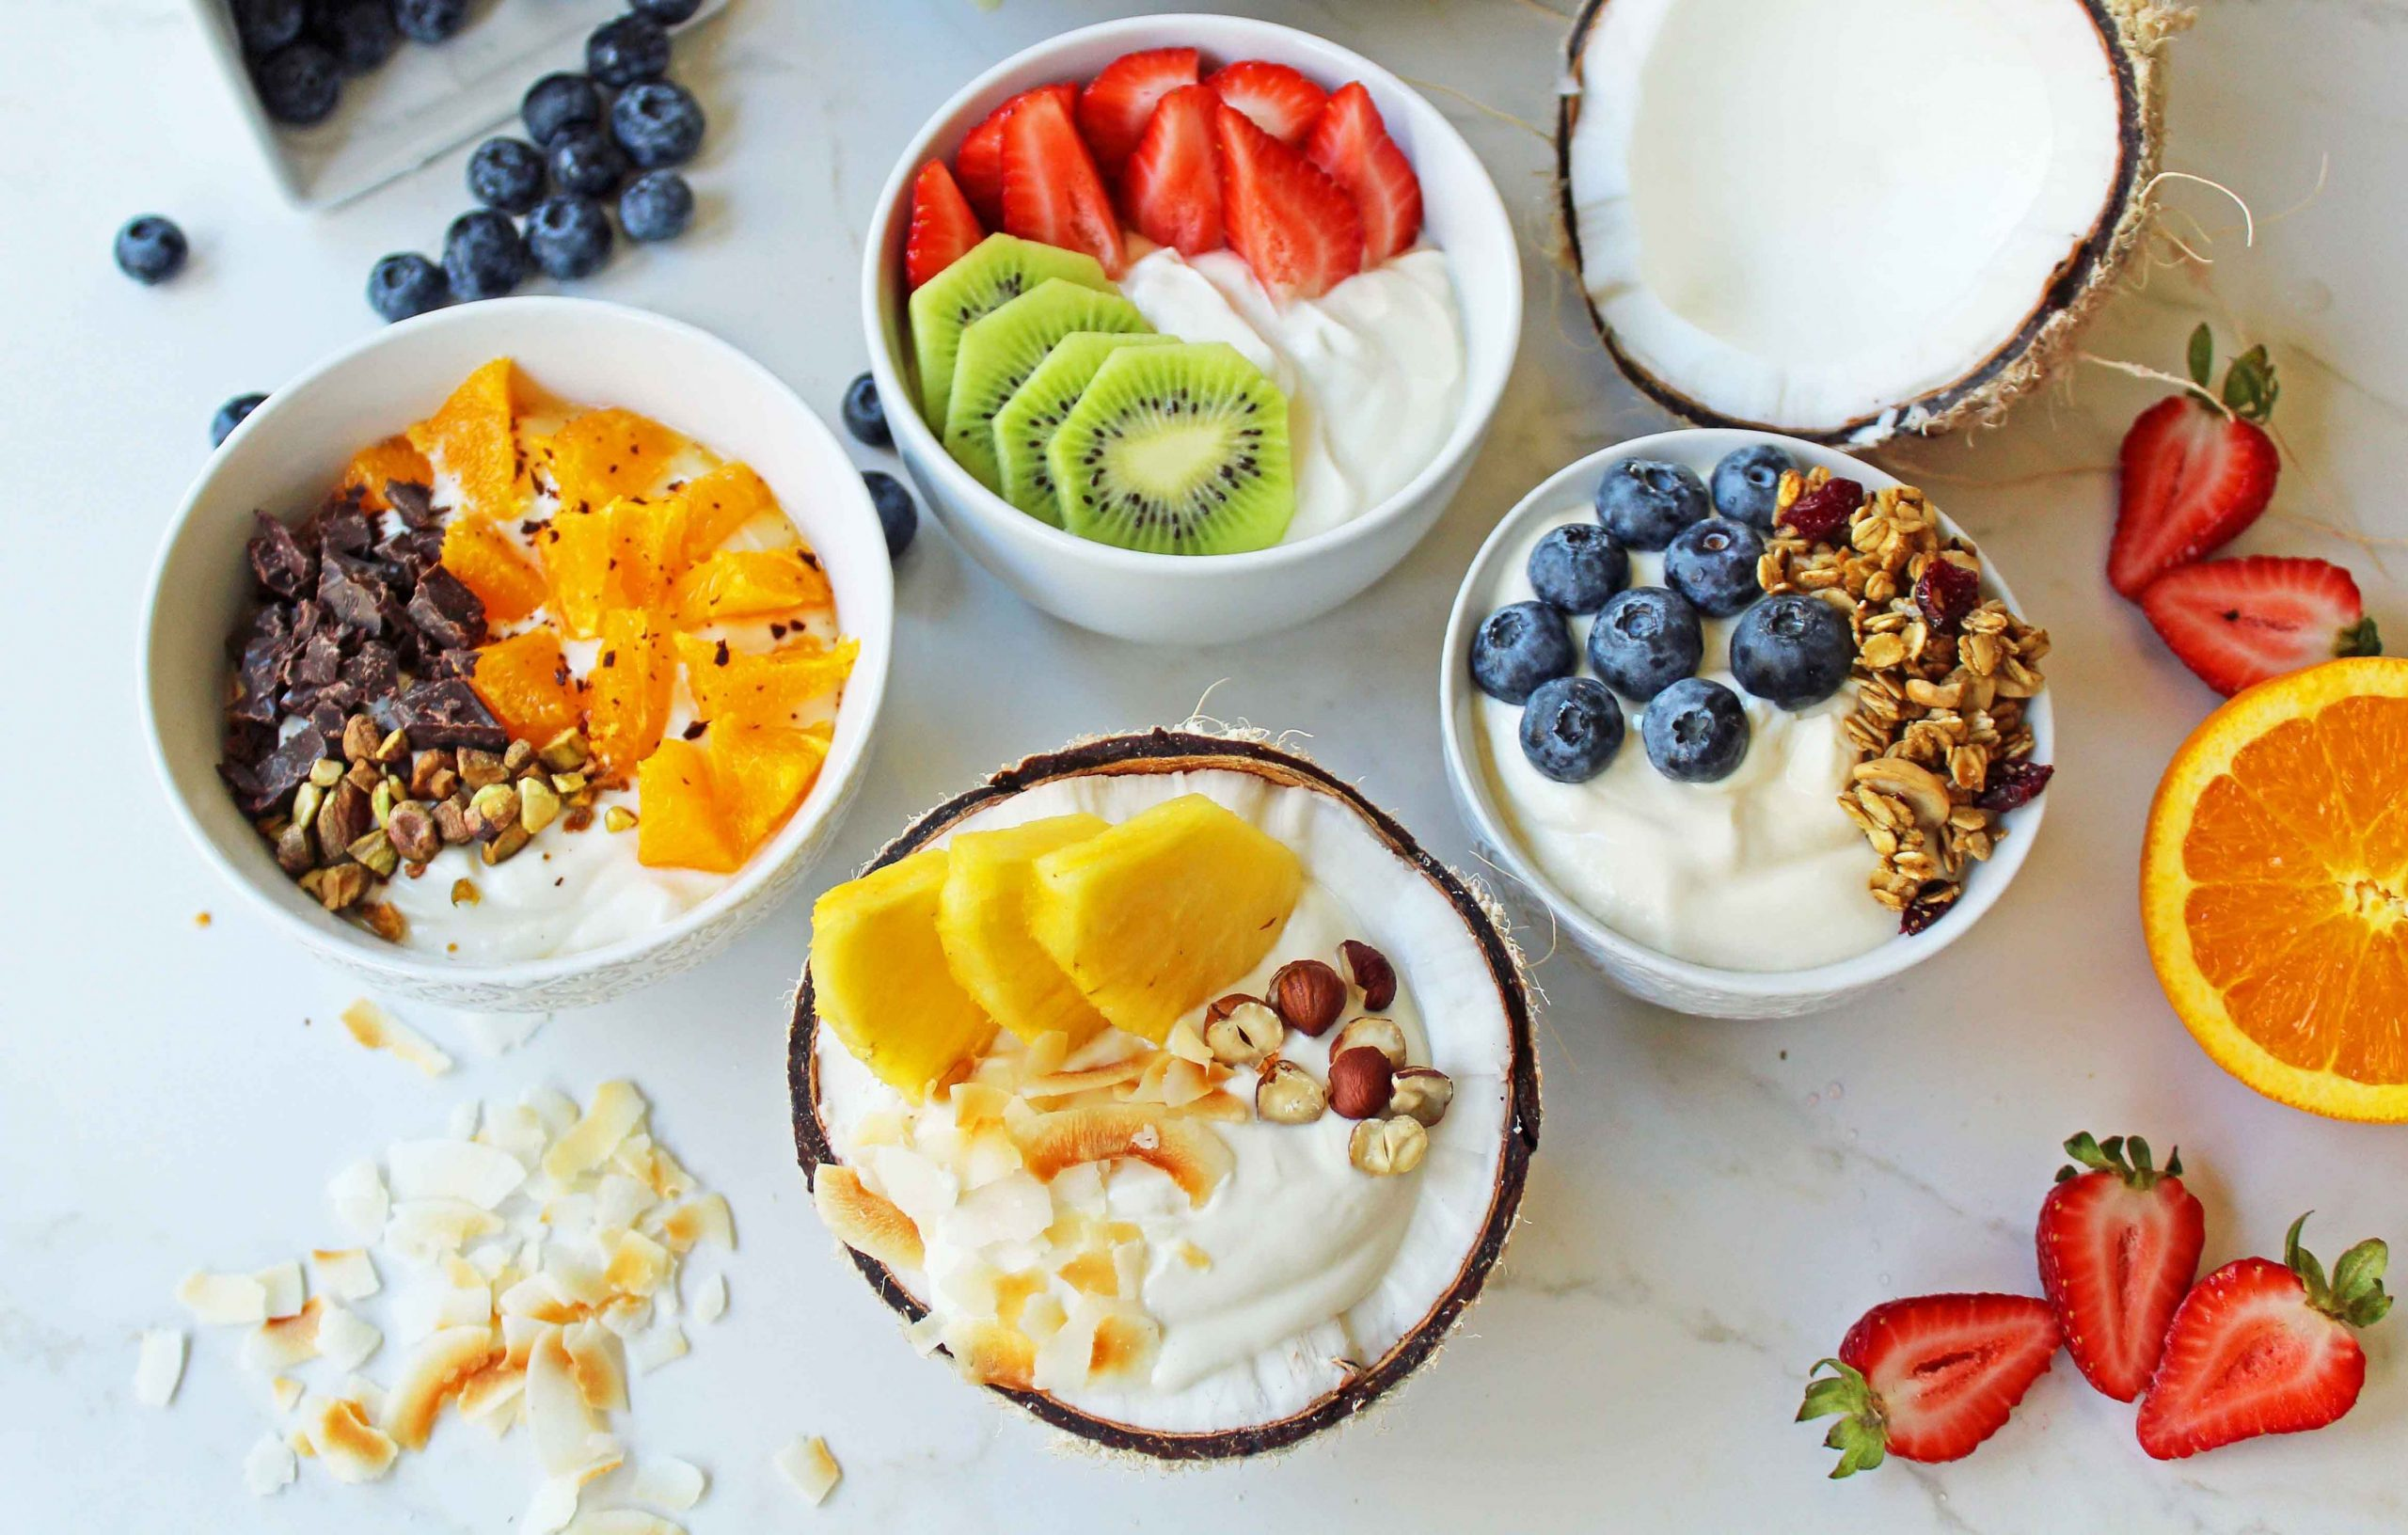 Greek Yogurt Breakfast Bowls with Toppings